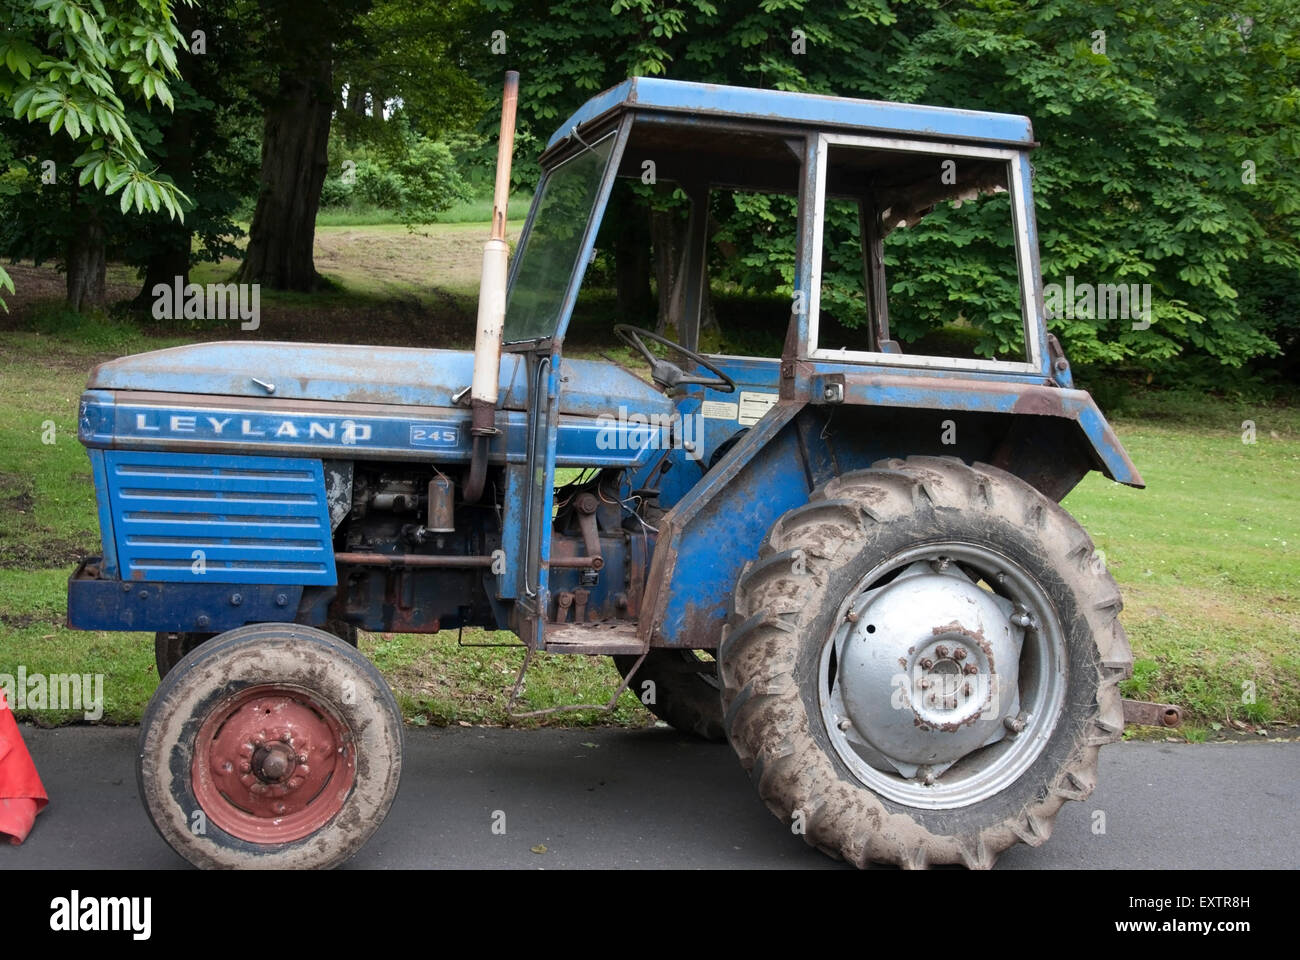 A Working Two tone Blue 1970's Leyland 245 Tractor - Stock Image